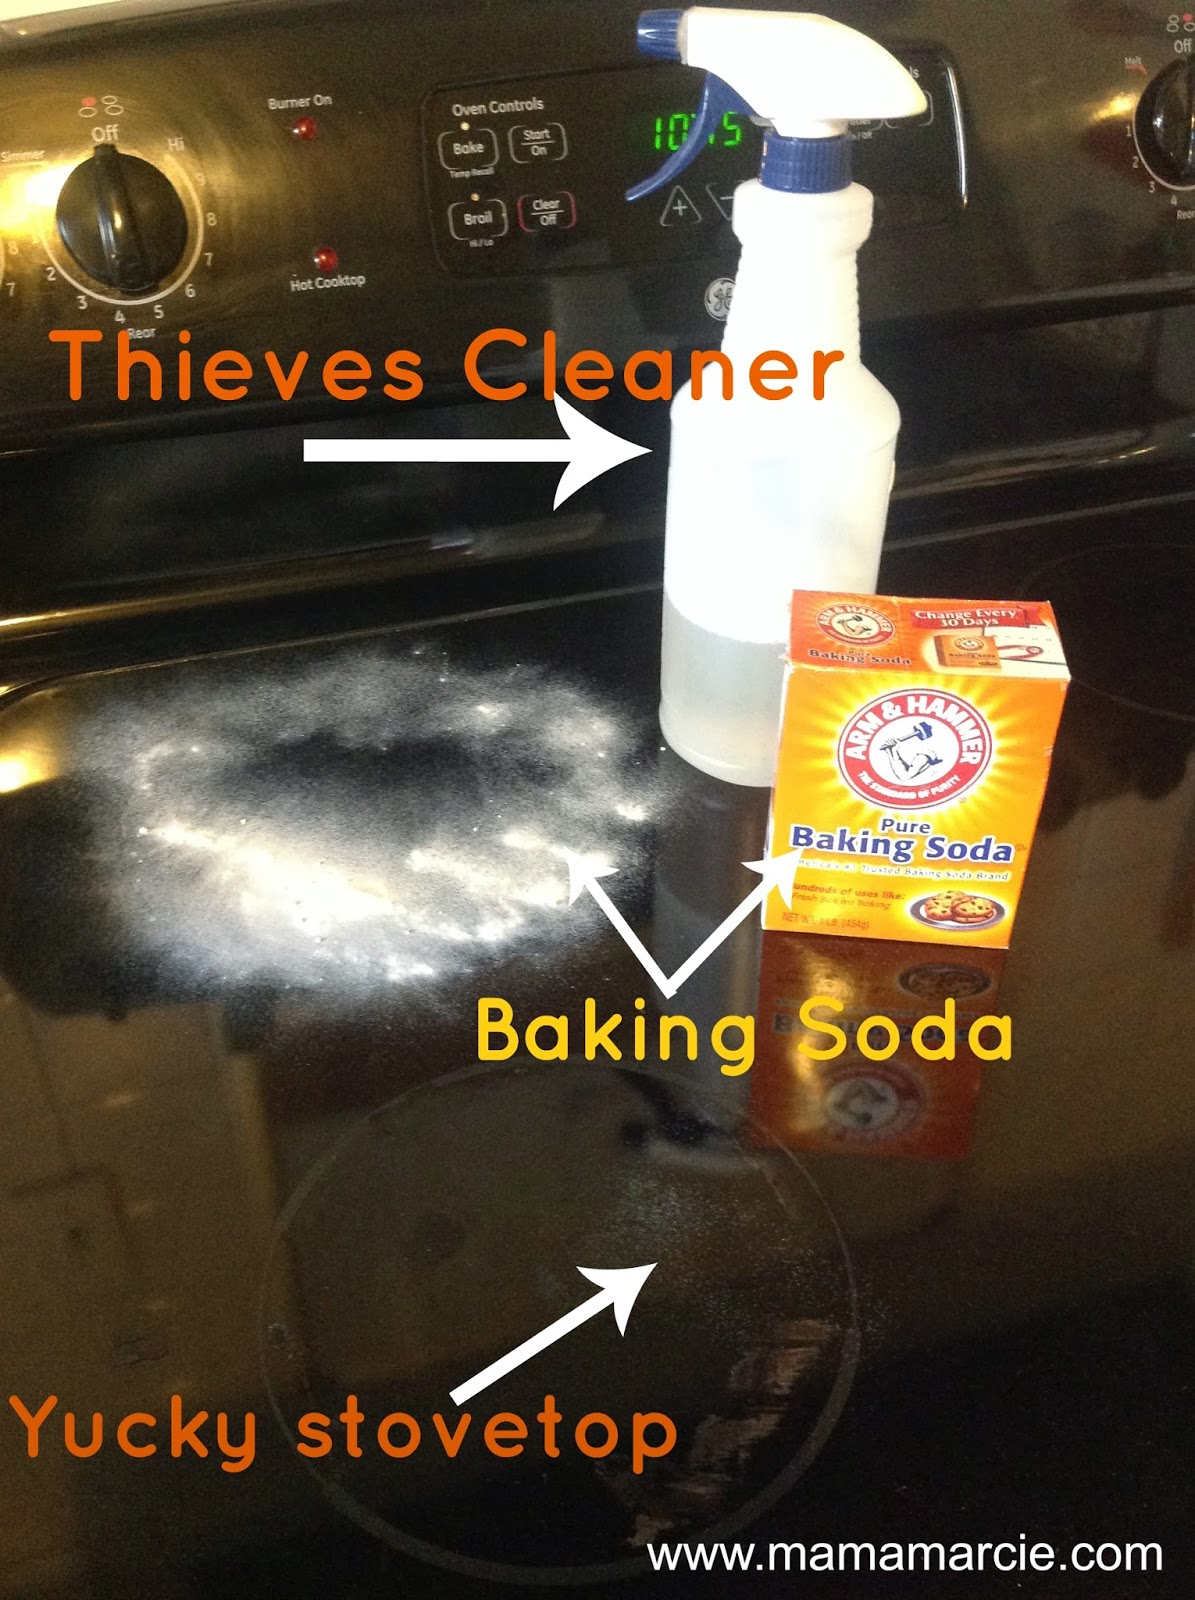 Mama Marcie Sparkly Clean Kitchen With Thieves Cleaner